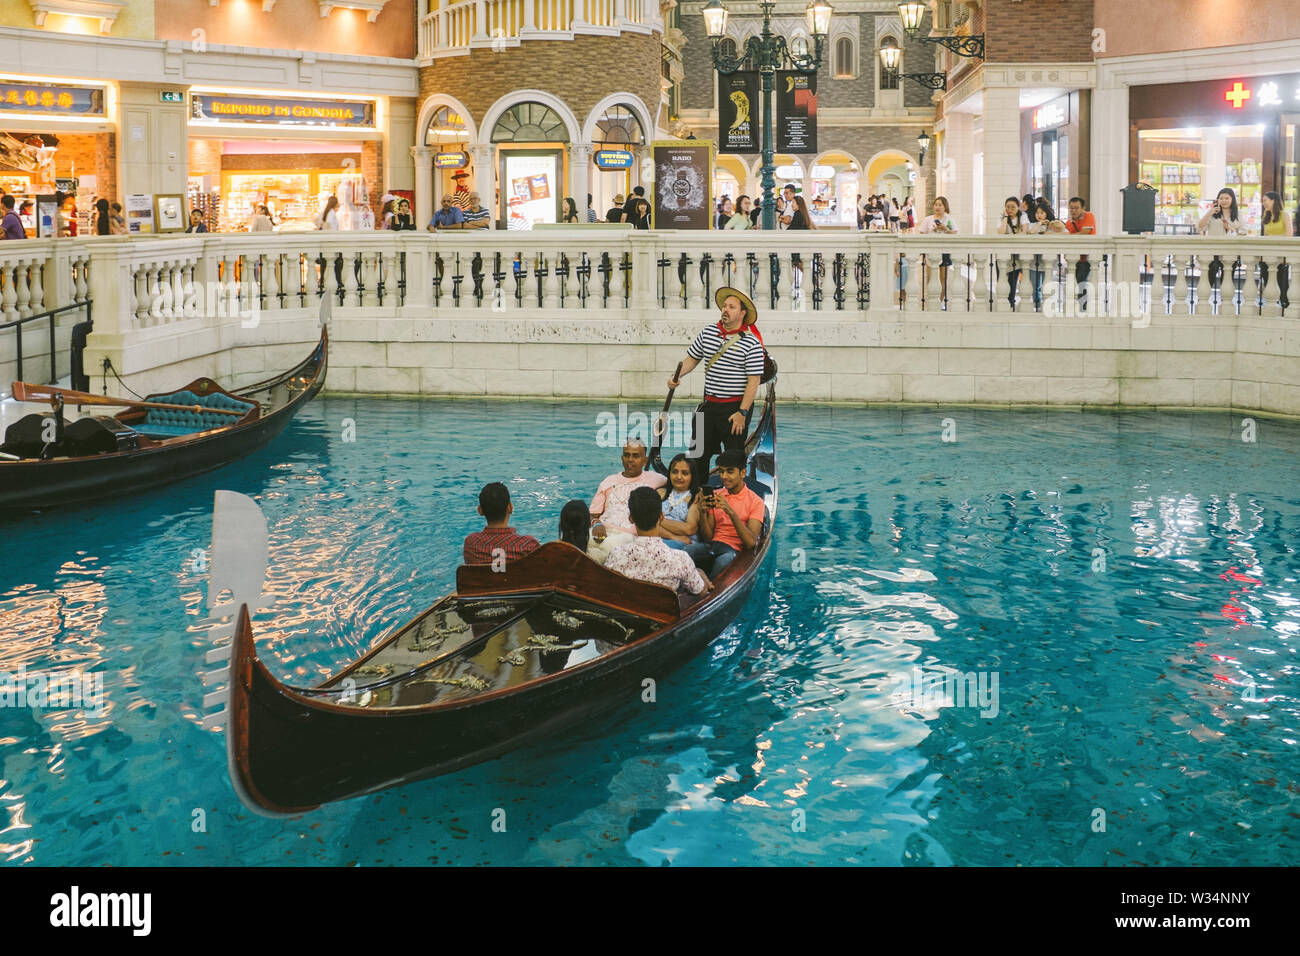 Gondola and canal in the shopping mall of the Venetian Macao. - Stock Image